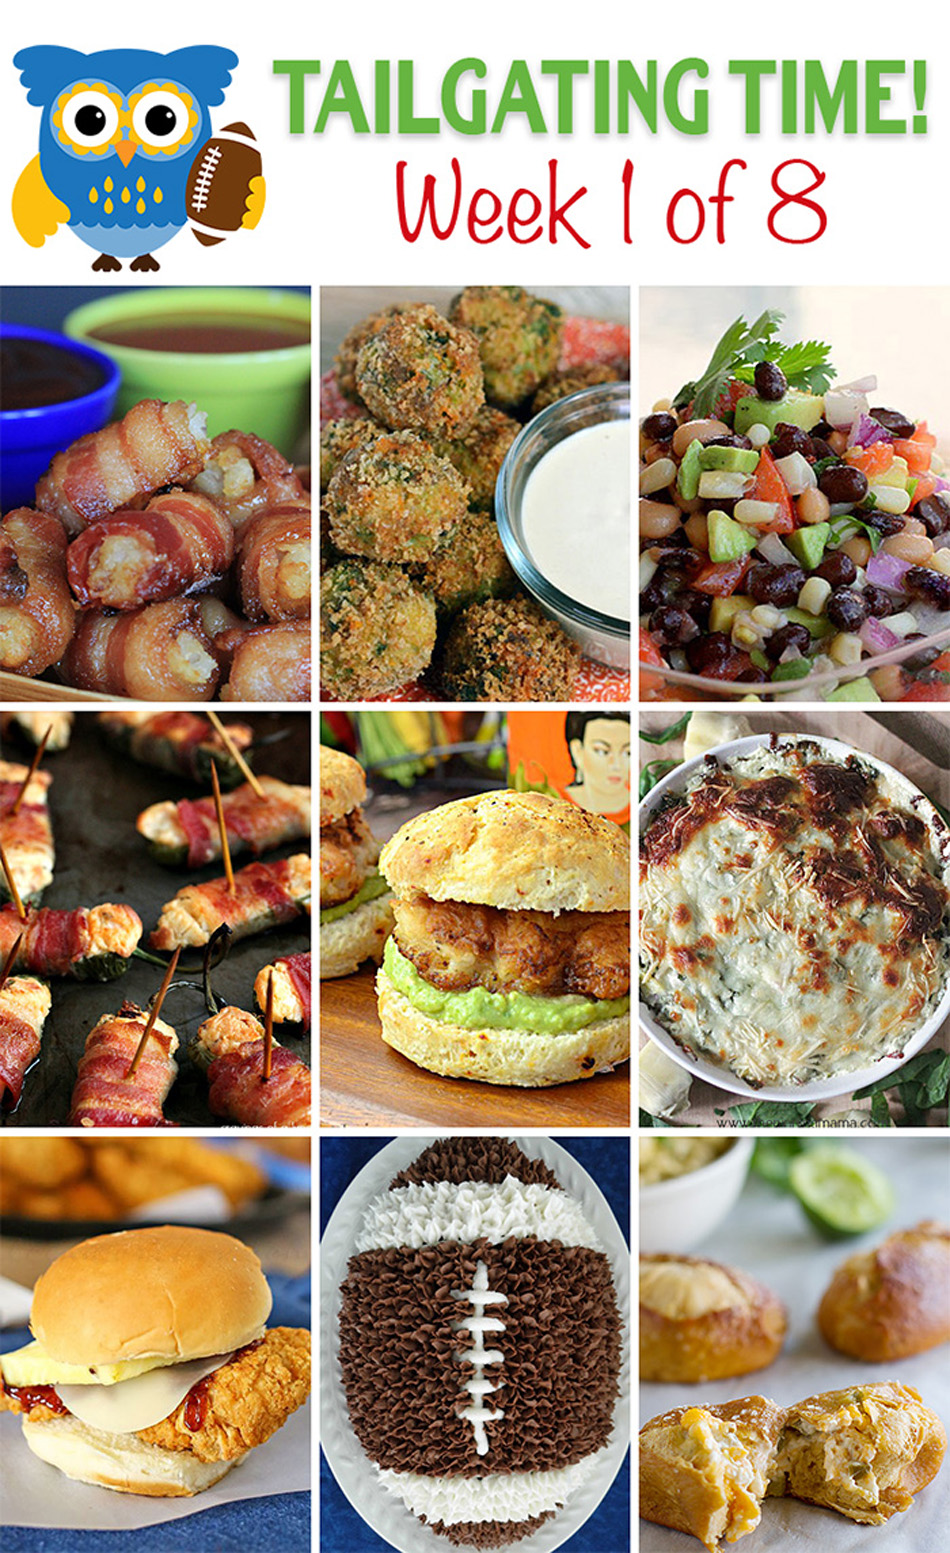 Tailgating Food Ideas Week 1 {of 8}